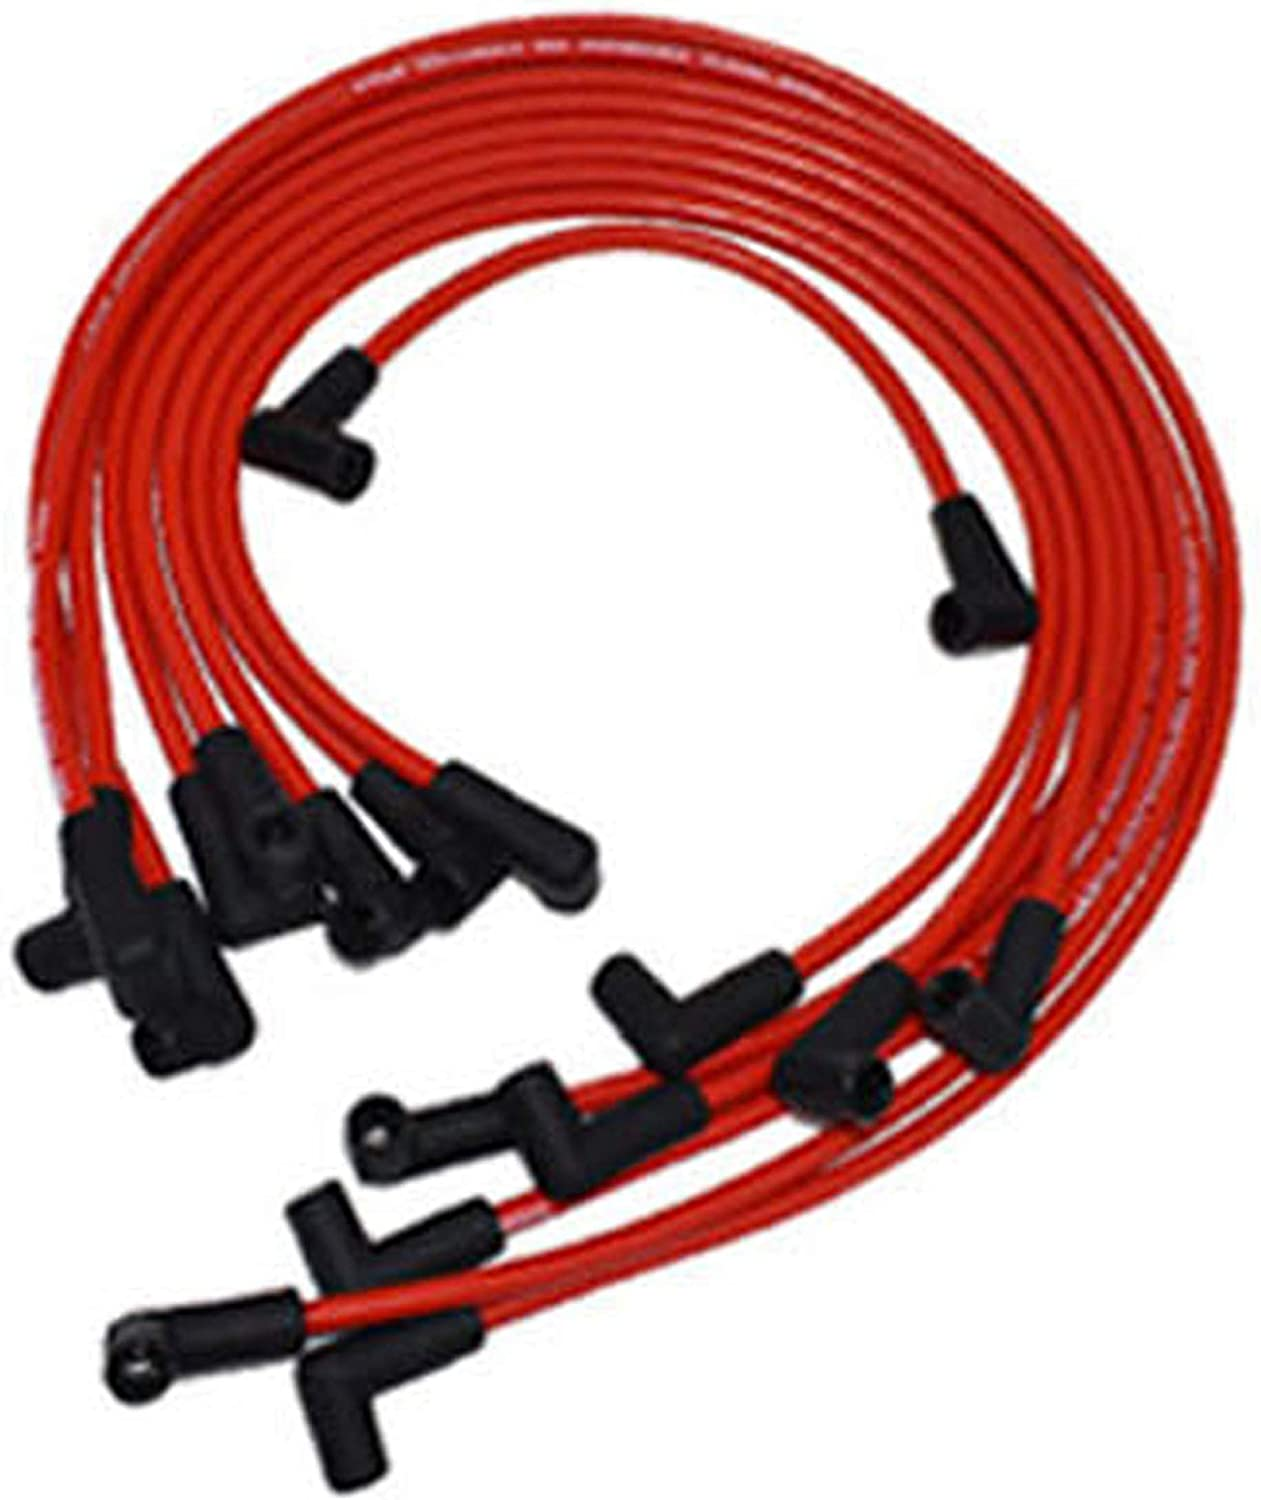 A-Team Clearance SALE Limited time Performance Silicone Spark Plug Automotive Wires Wire Set OFFicial site